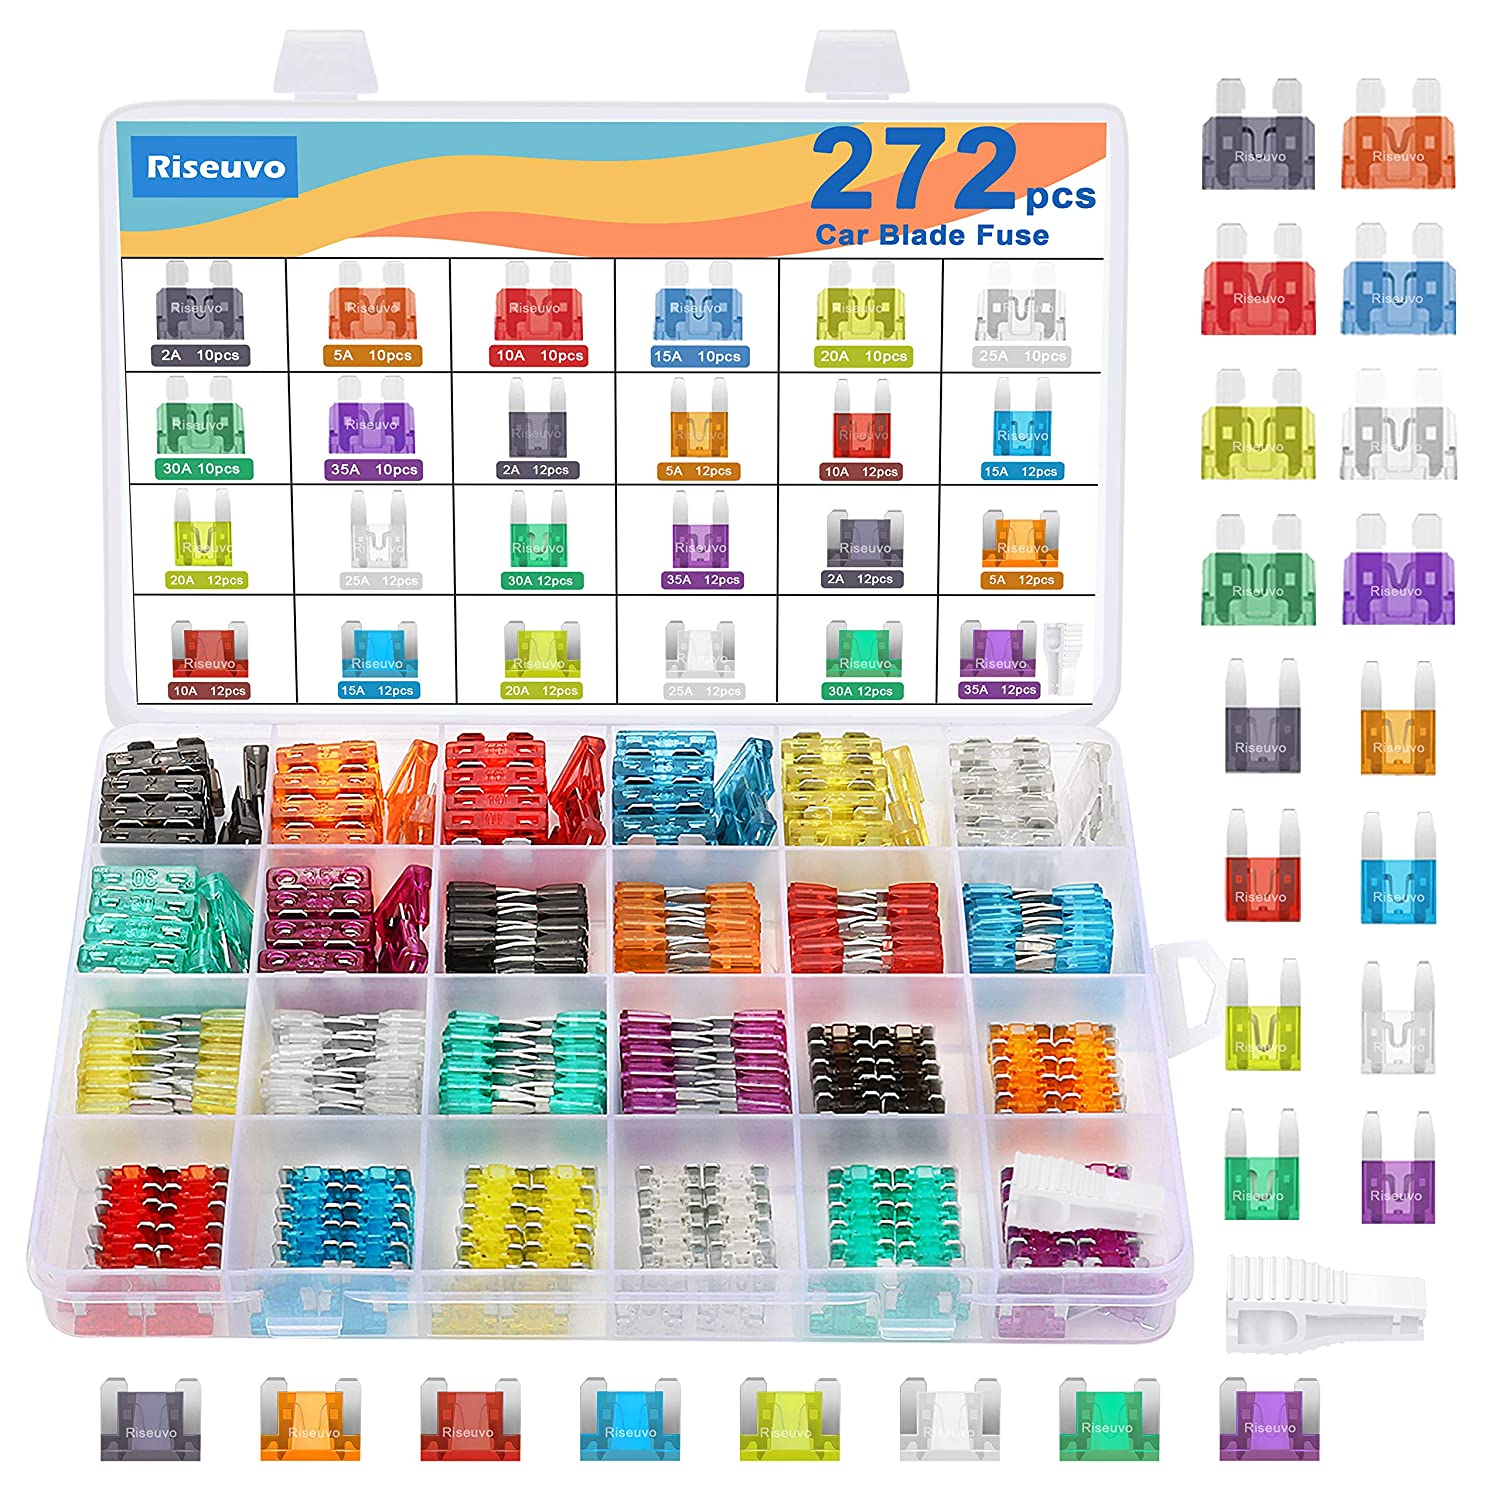 272pcs Automotive Car Fuses Kit - Auto Blade Fuse Assortment Set, Mini Fuse, Low Profile Mini Fuses and Standard Fuse (2 5 10 15 20 25 30 35AMP)